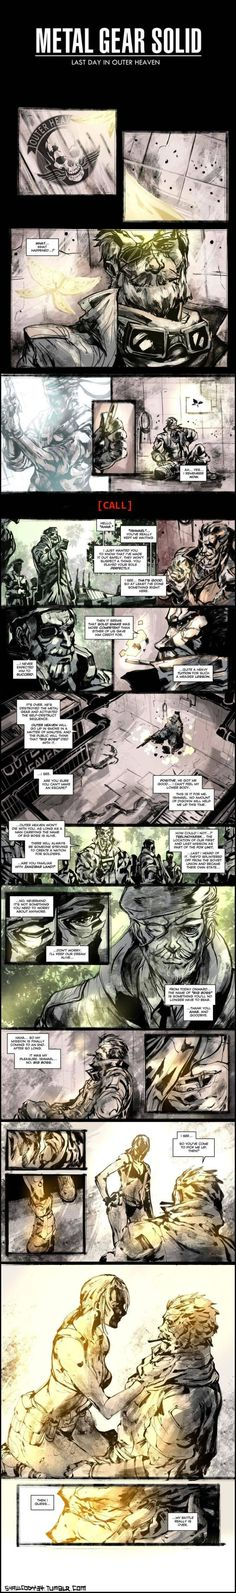 Metal Gear Solid V Fan's Comic Ending Is Better Than The Real Thing #MetalGearSolid #MGS5